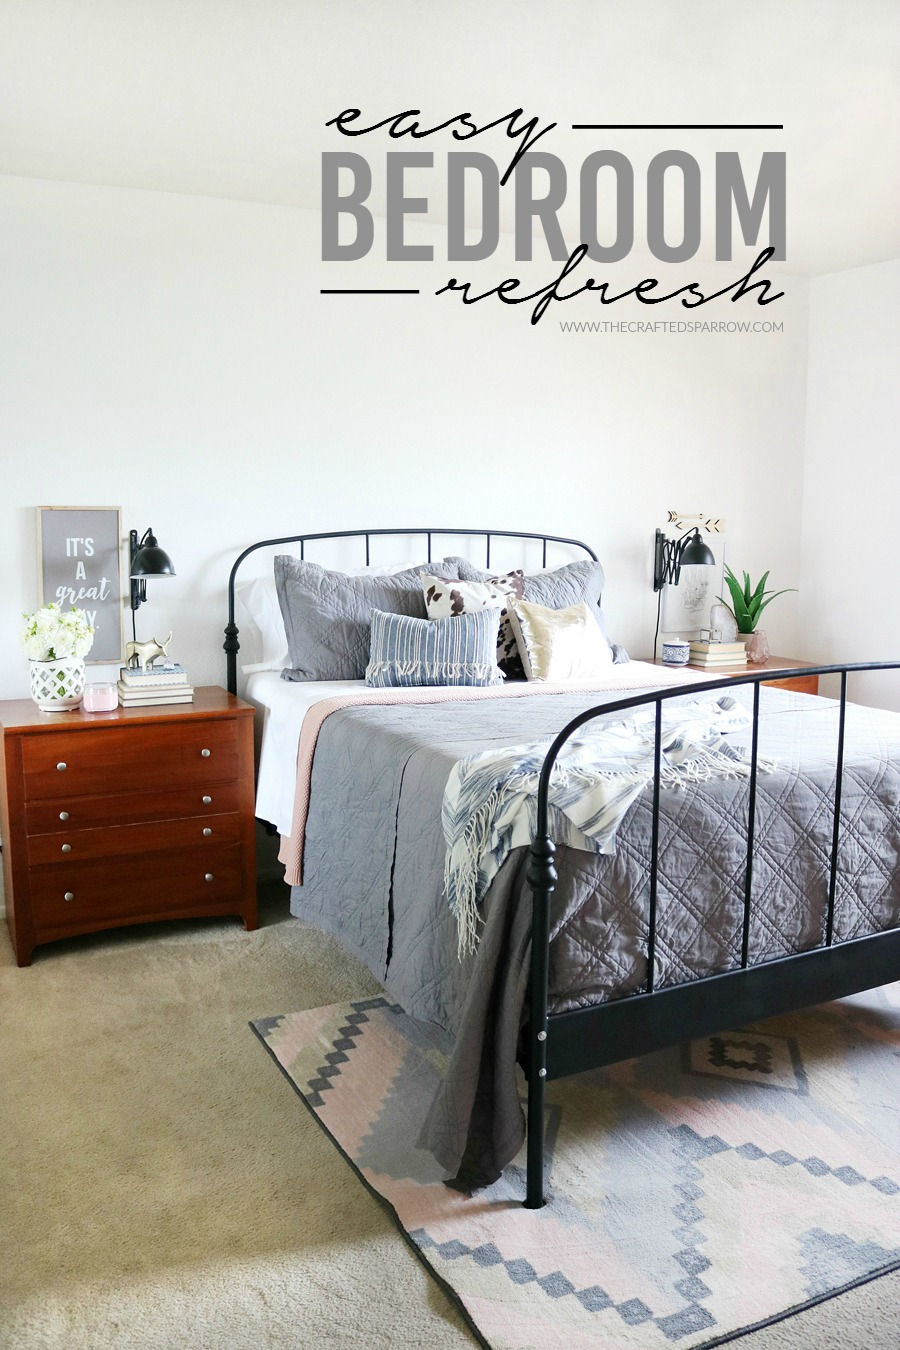 Easy Bedroom Refresh - Neutral basics mixed with soft touches of pinks and southwest elements.